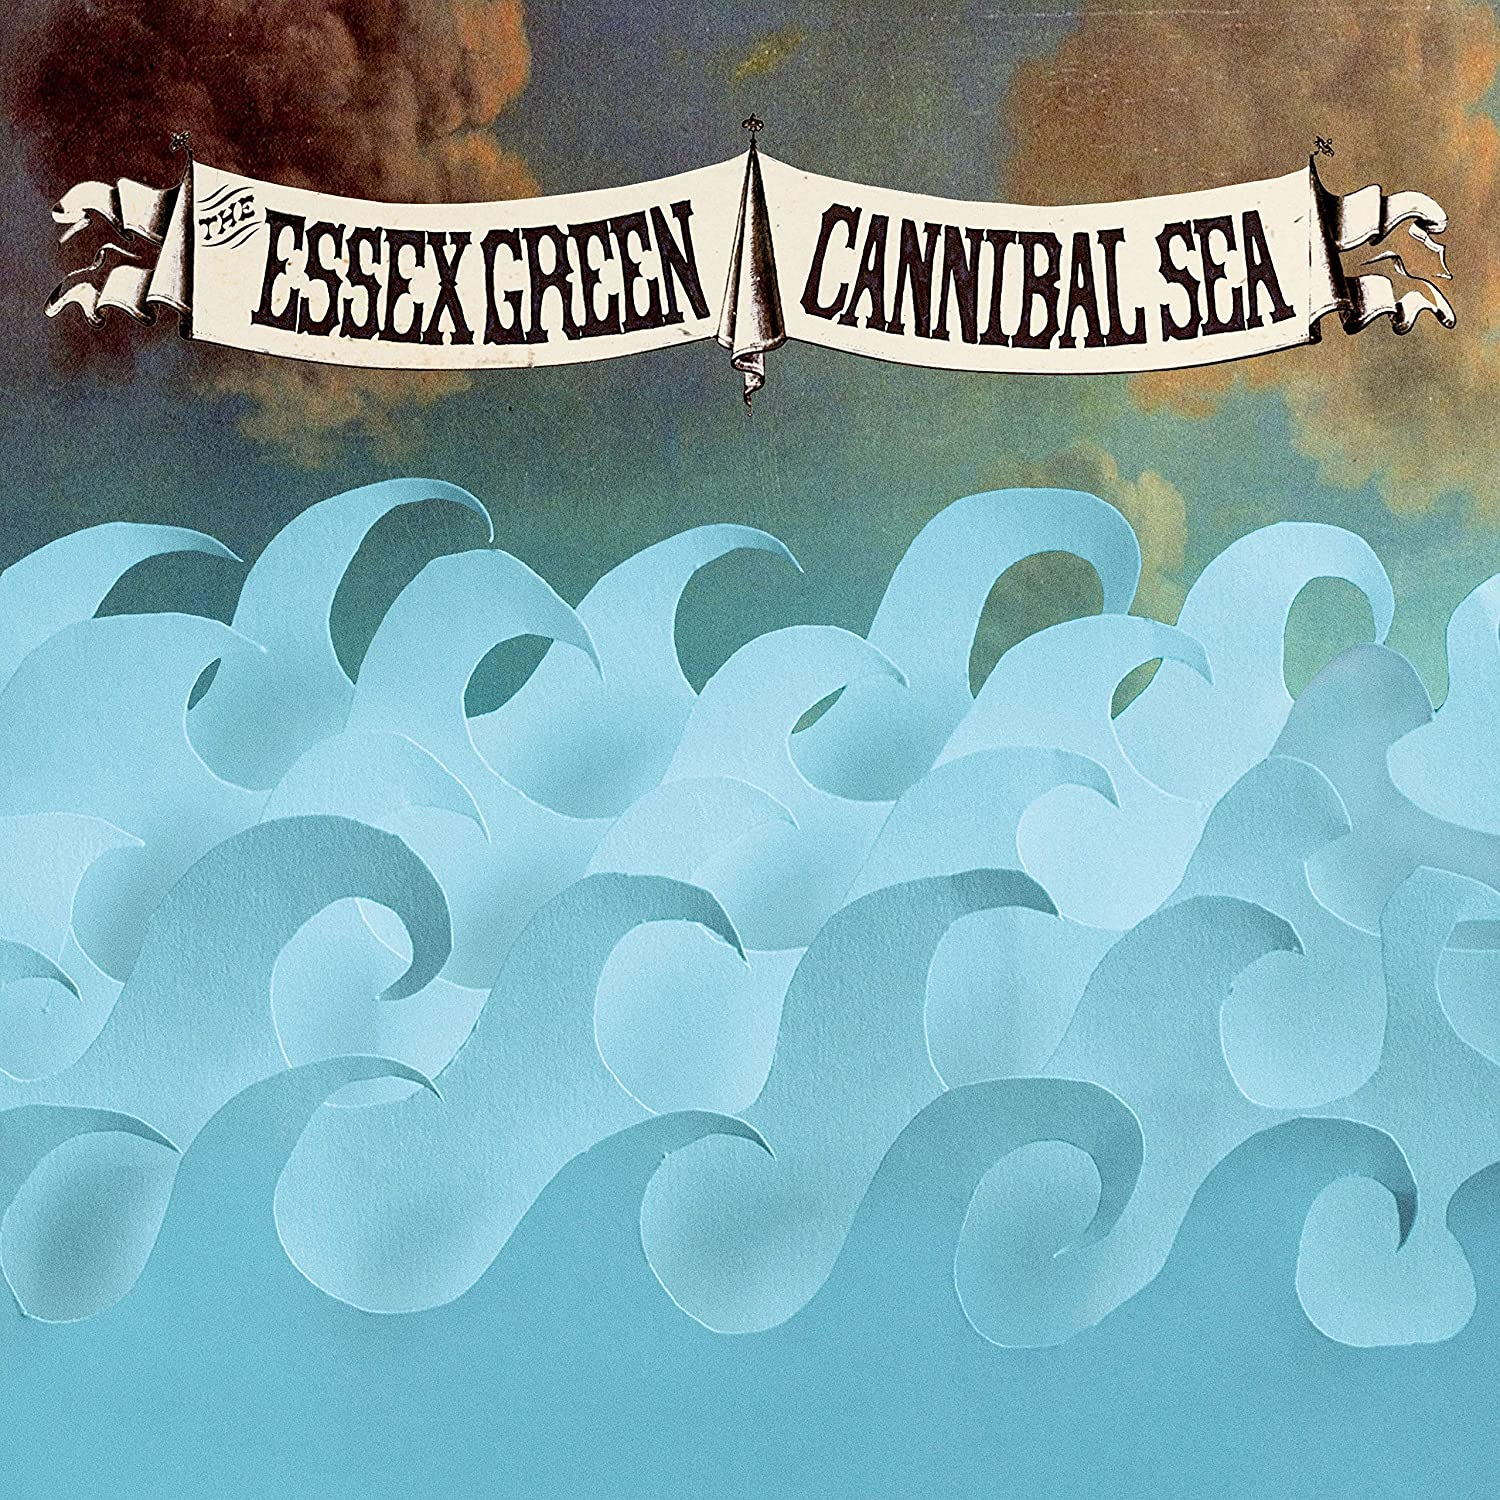 The Essex Green, Cannibal Sea